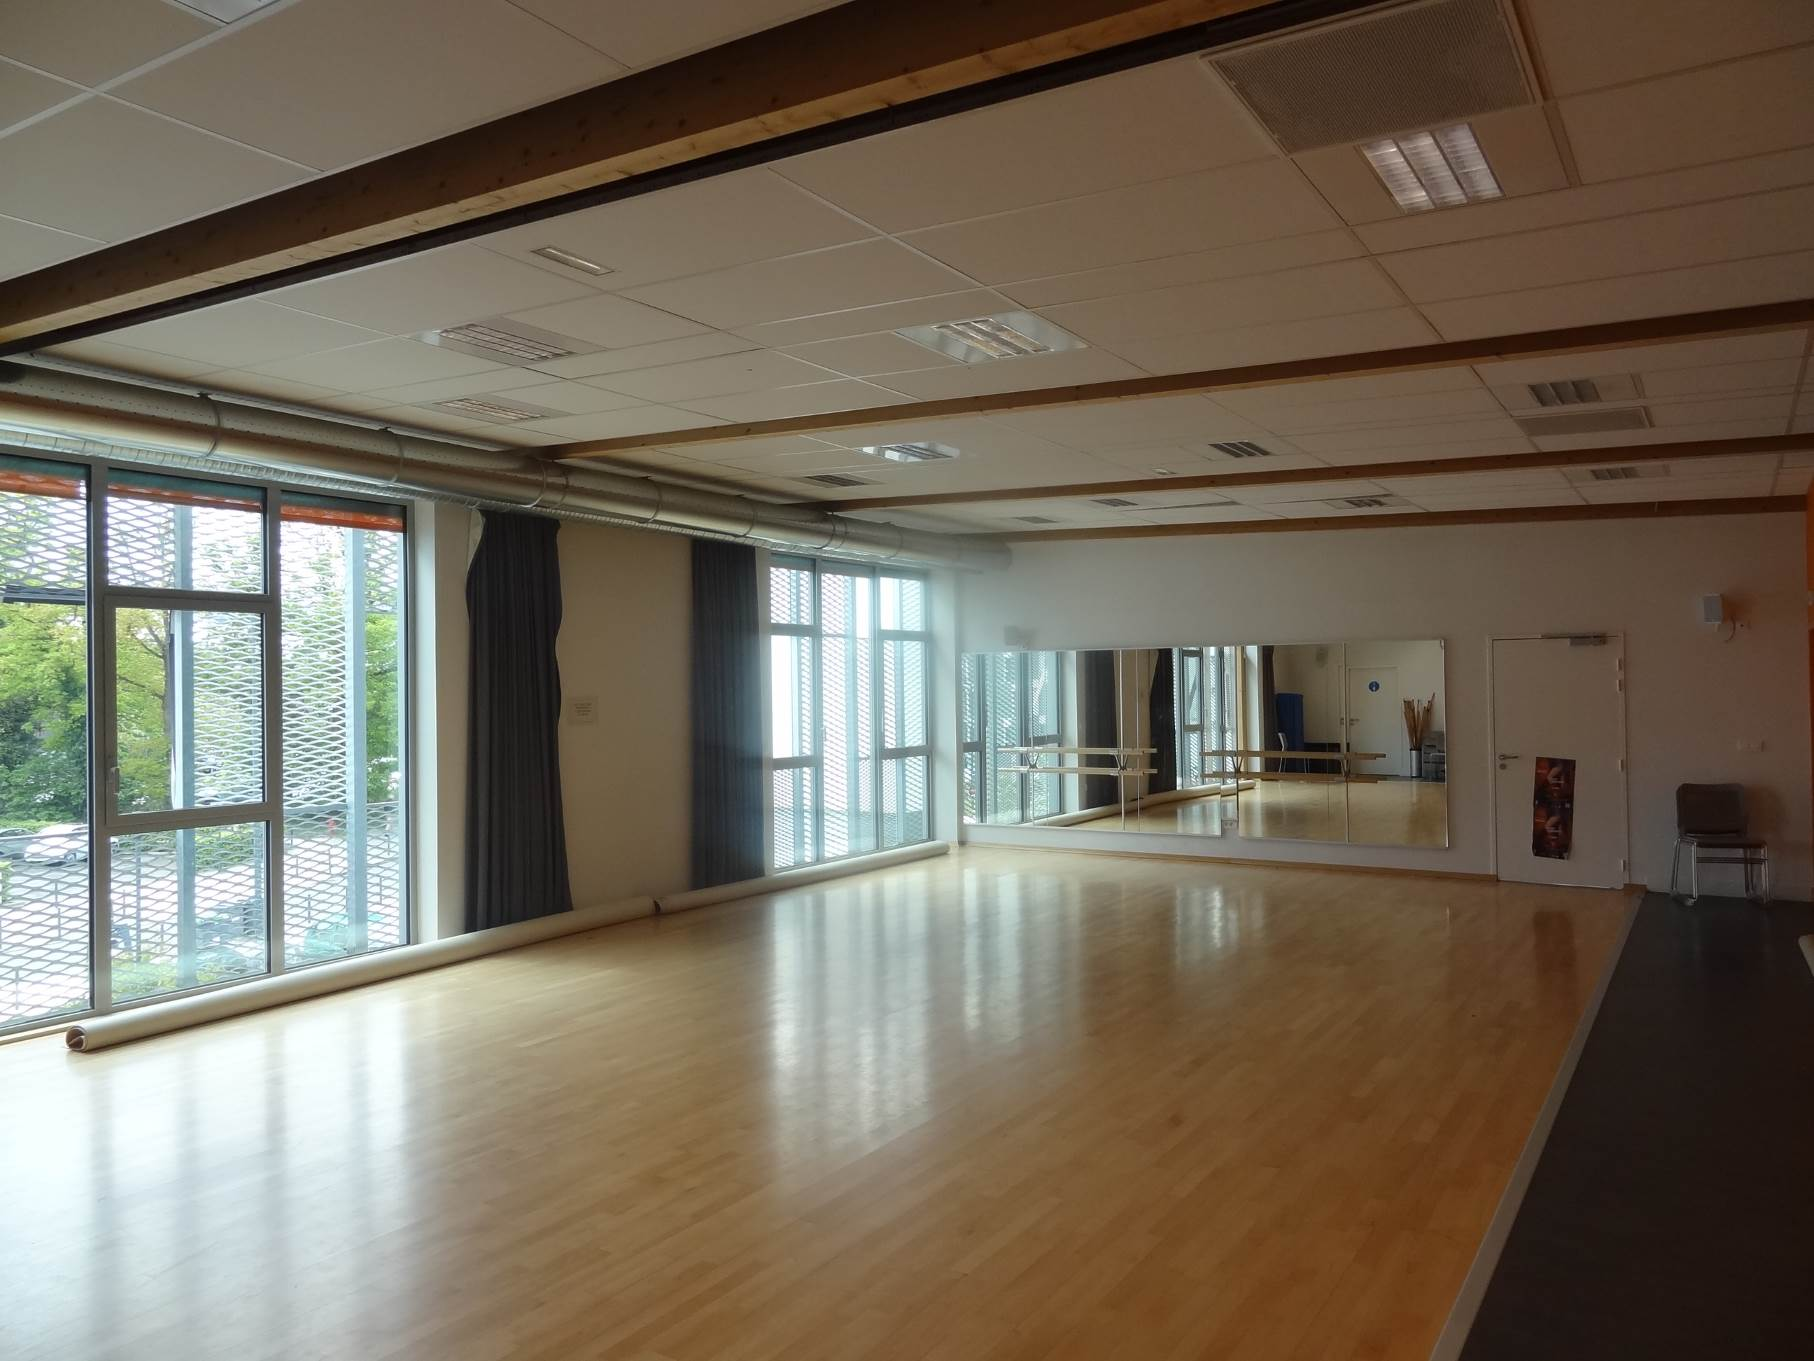 Salle de danse photo 1